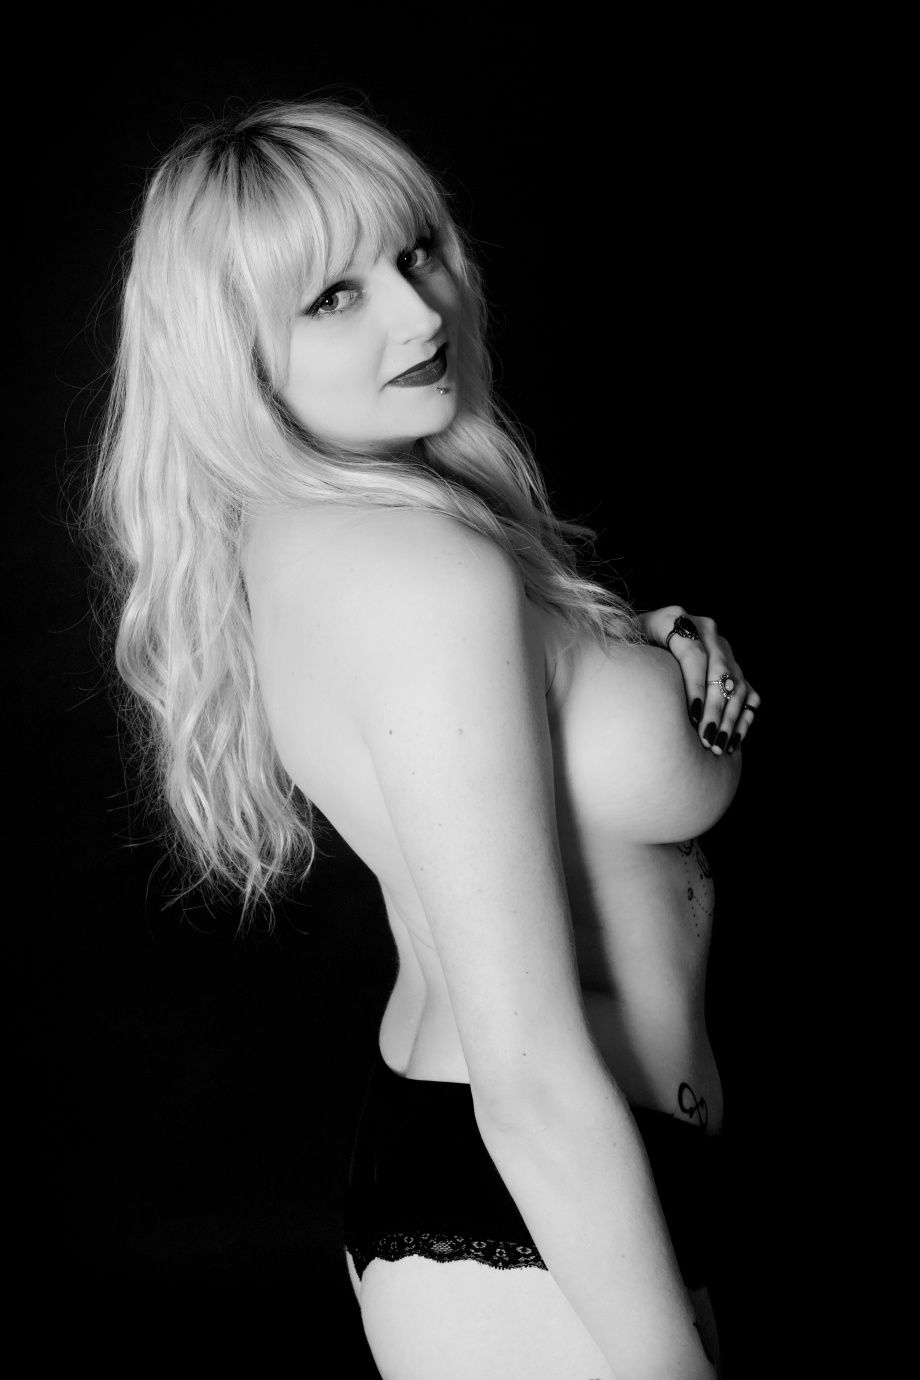 portrait, black and white, studio, glamour, ireland, cork, blonde, lingerie, boudoir, topless, implied